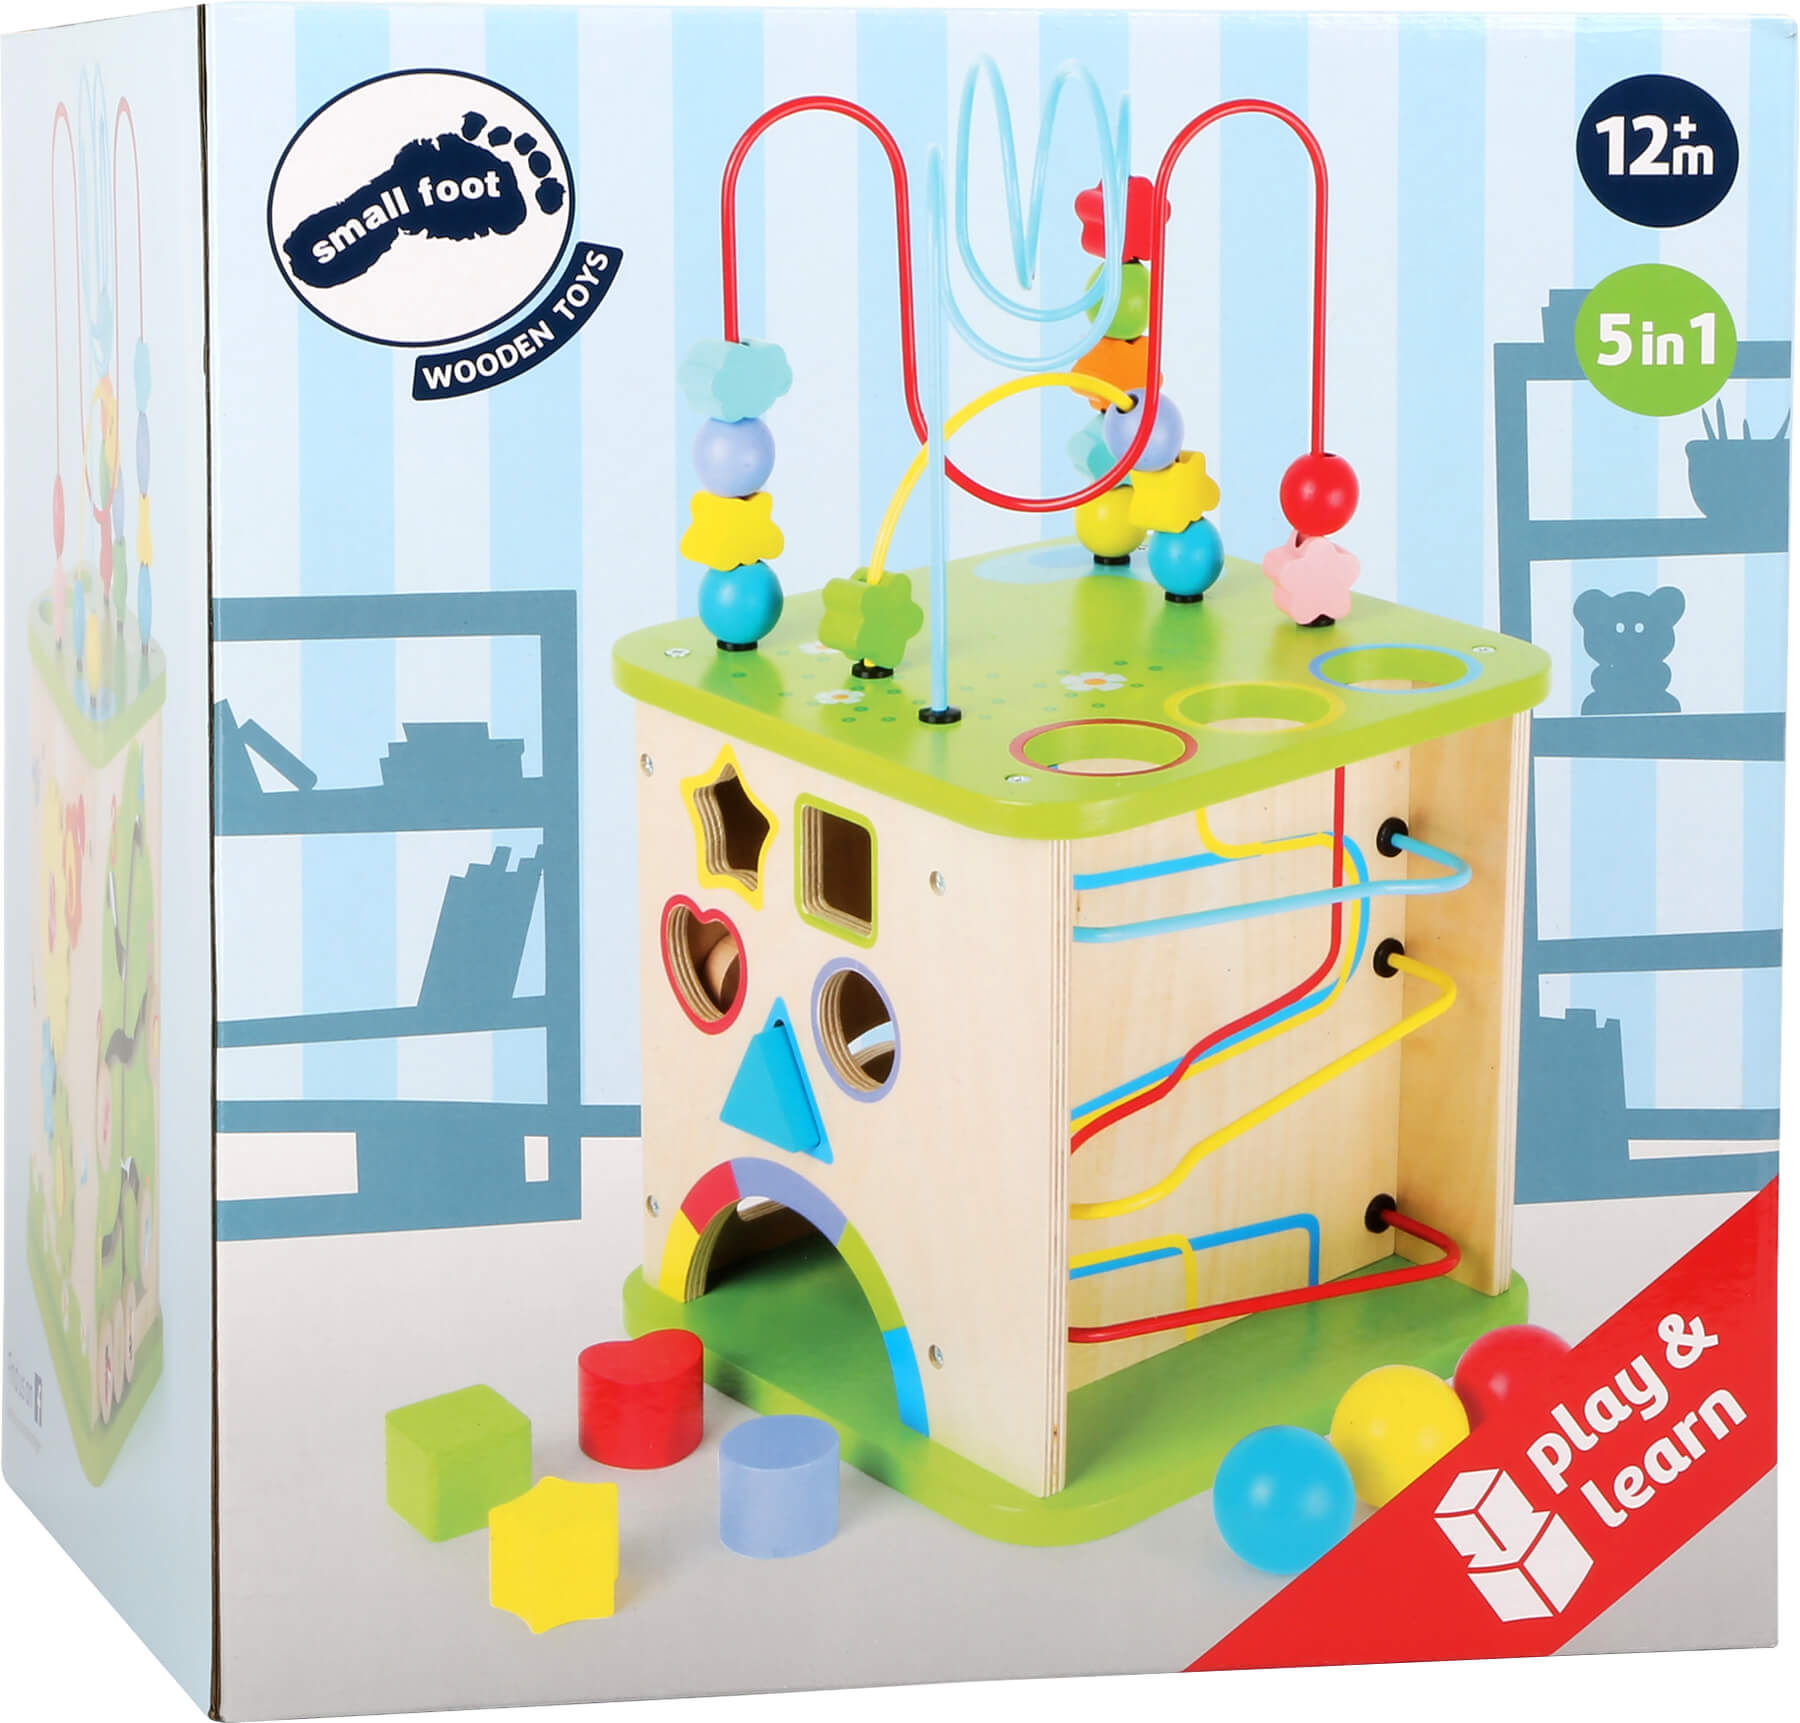 Motor Skills World with Marble Run Wooden toys Other theme